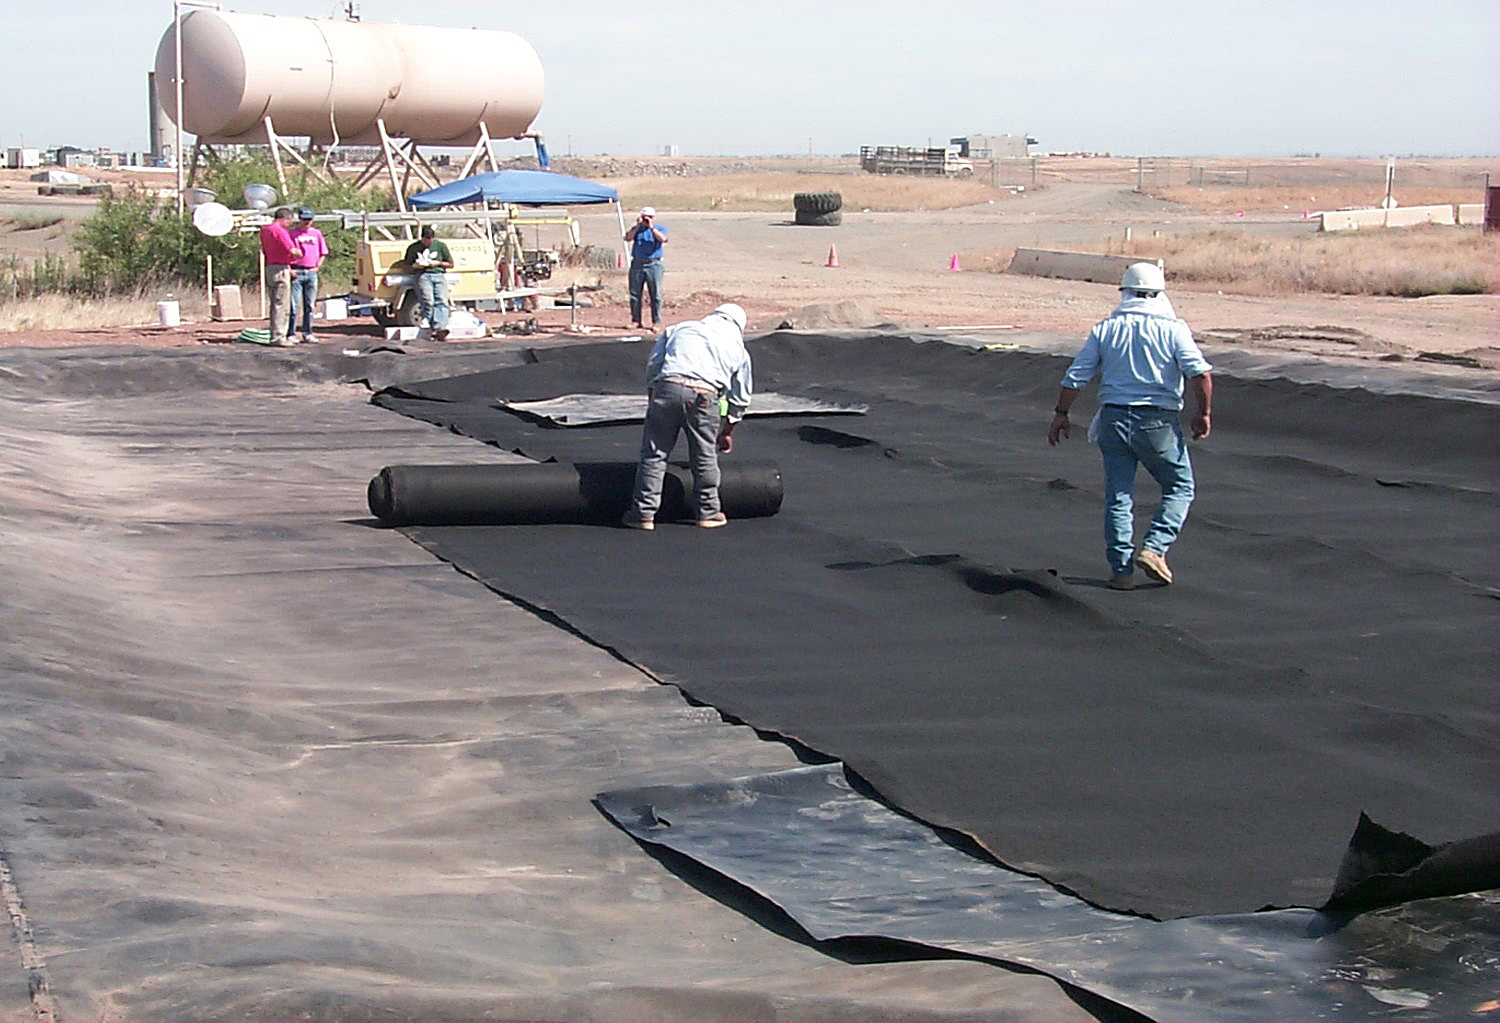 Installation of a geomembrane and overlying drainage layer for a composite liner. Photo by Bill Albright.